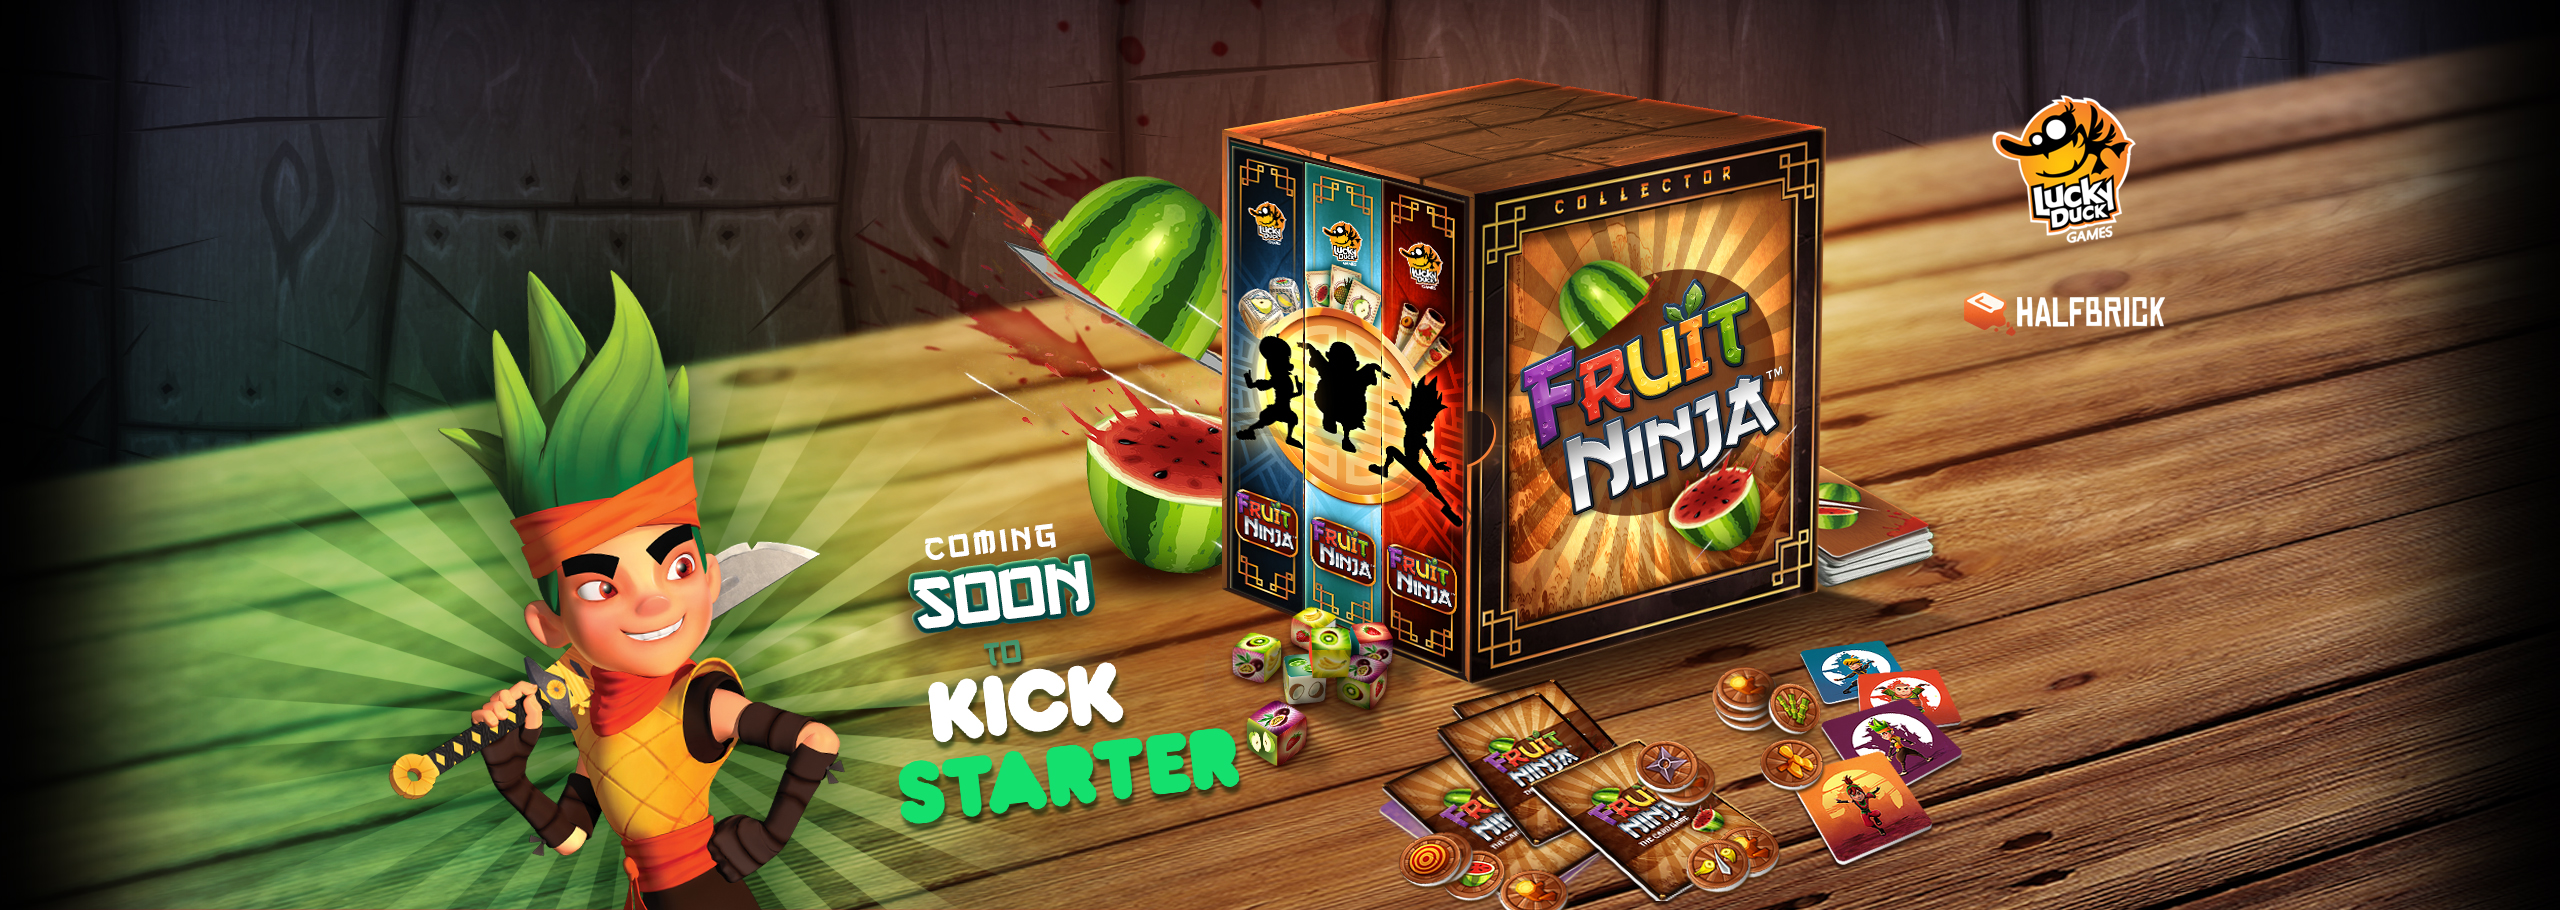 Fruit Ninja Game Series Coming Soon To Kickstarter